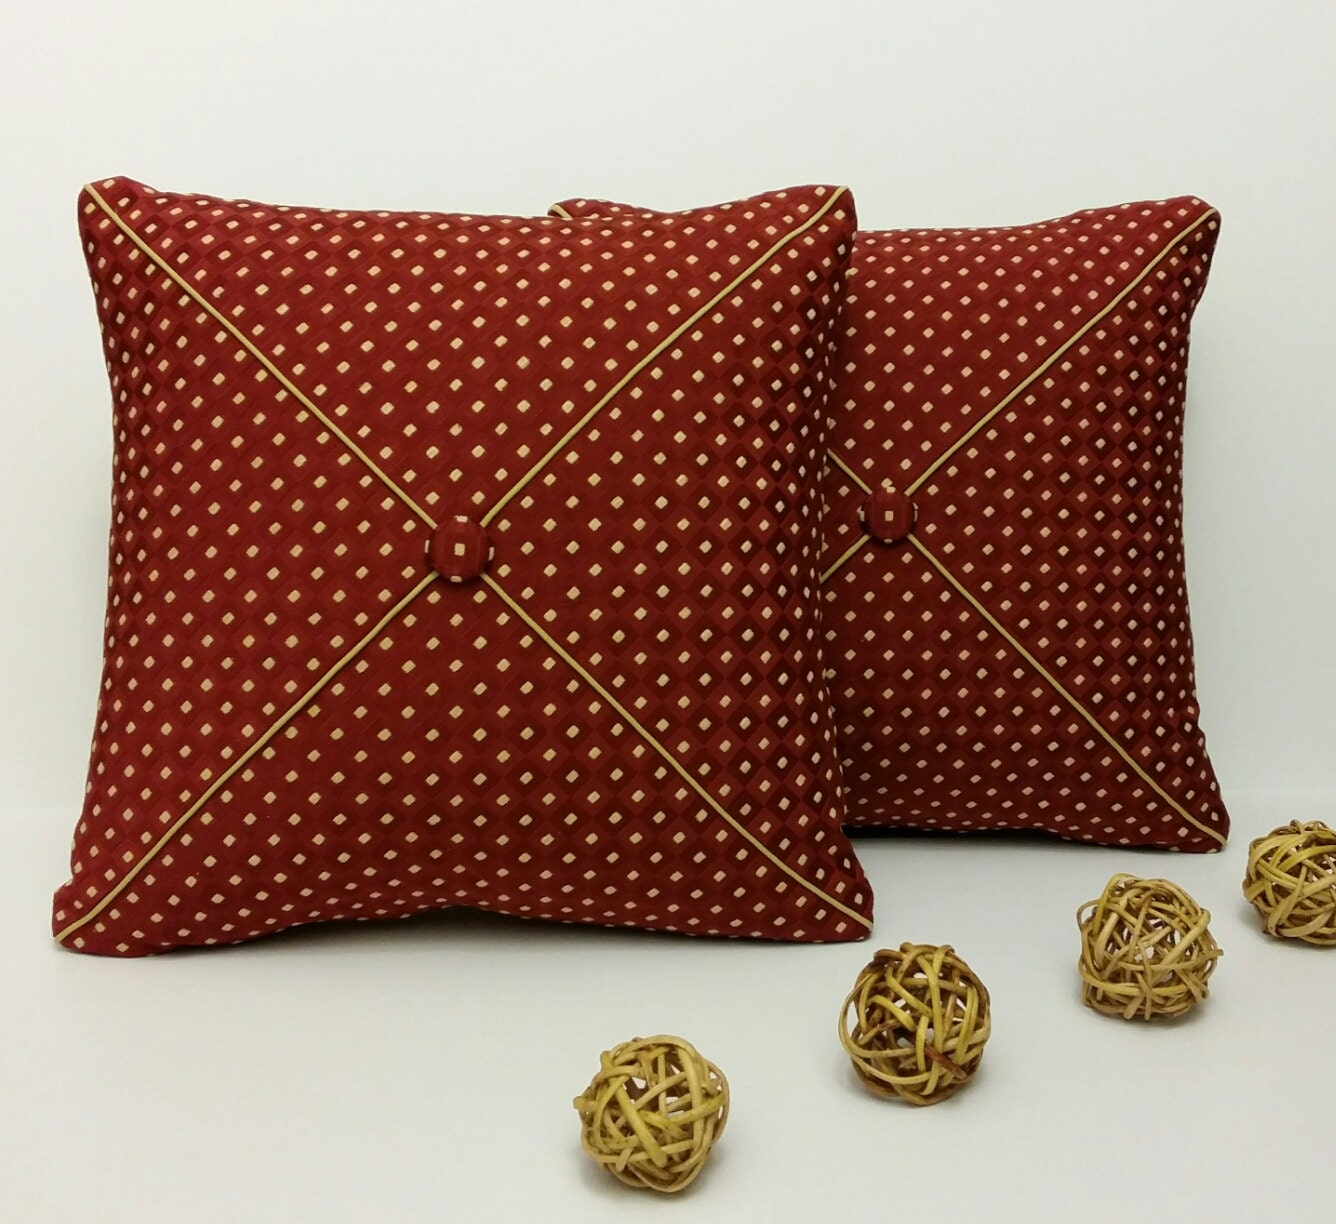 Throw Pillows For Burgundy Couch : Set of 2 Burgundy Throw Pillows Decorative Pillow Accent